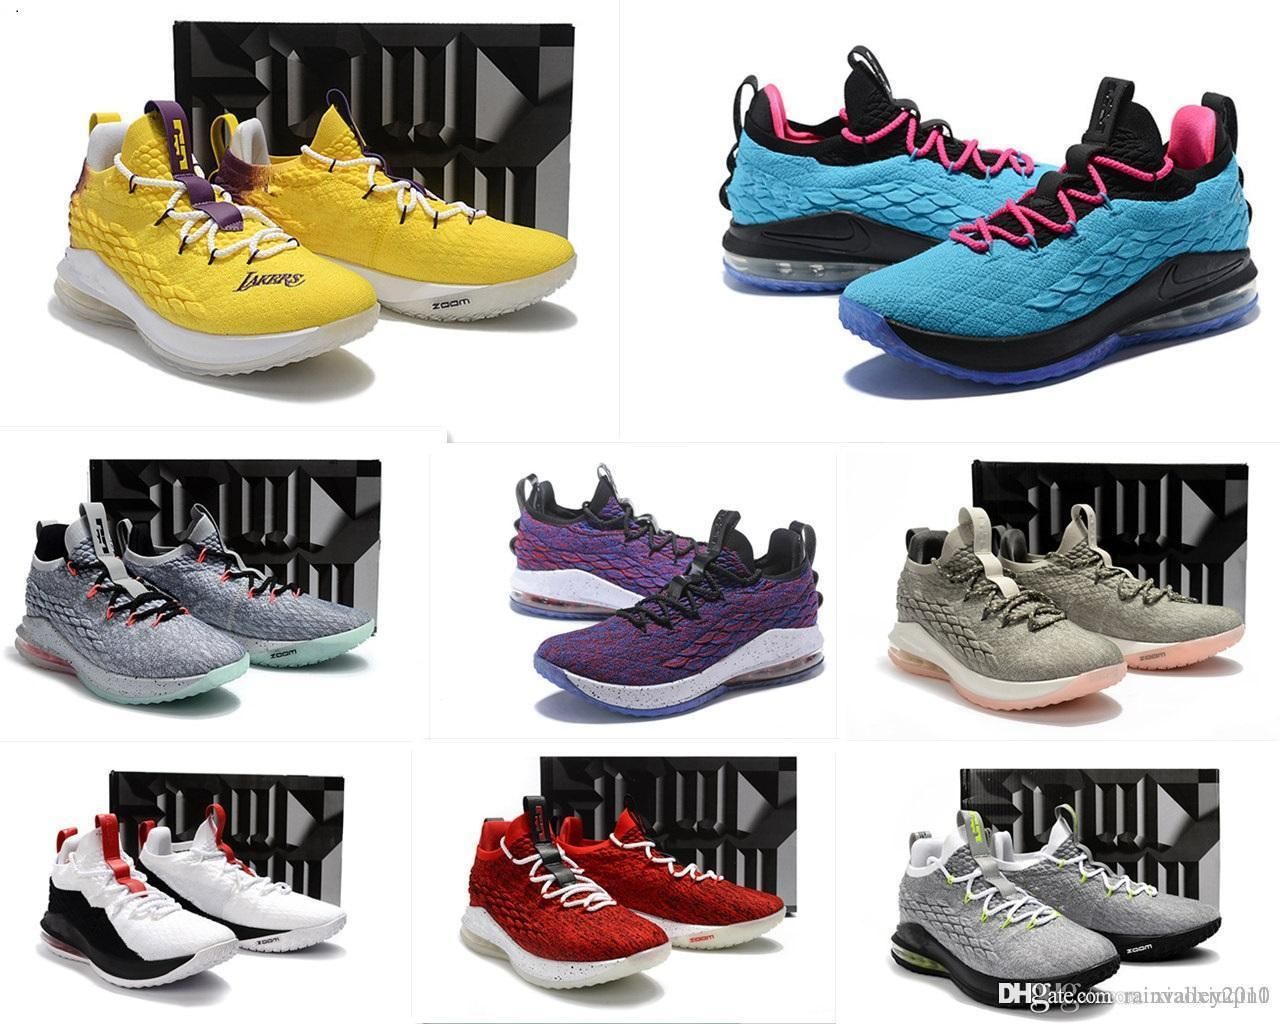 a36fd4e452ee 2019 What The Lebrons 15 XV Low Mens Basketball Shoes For Sale MVP  Christmas BHM Oreo Youth Kids Generation Sneakers Boots With Original Box  From ...